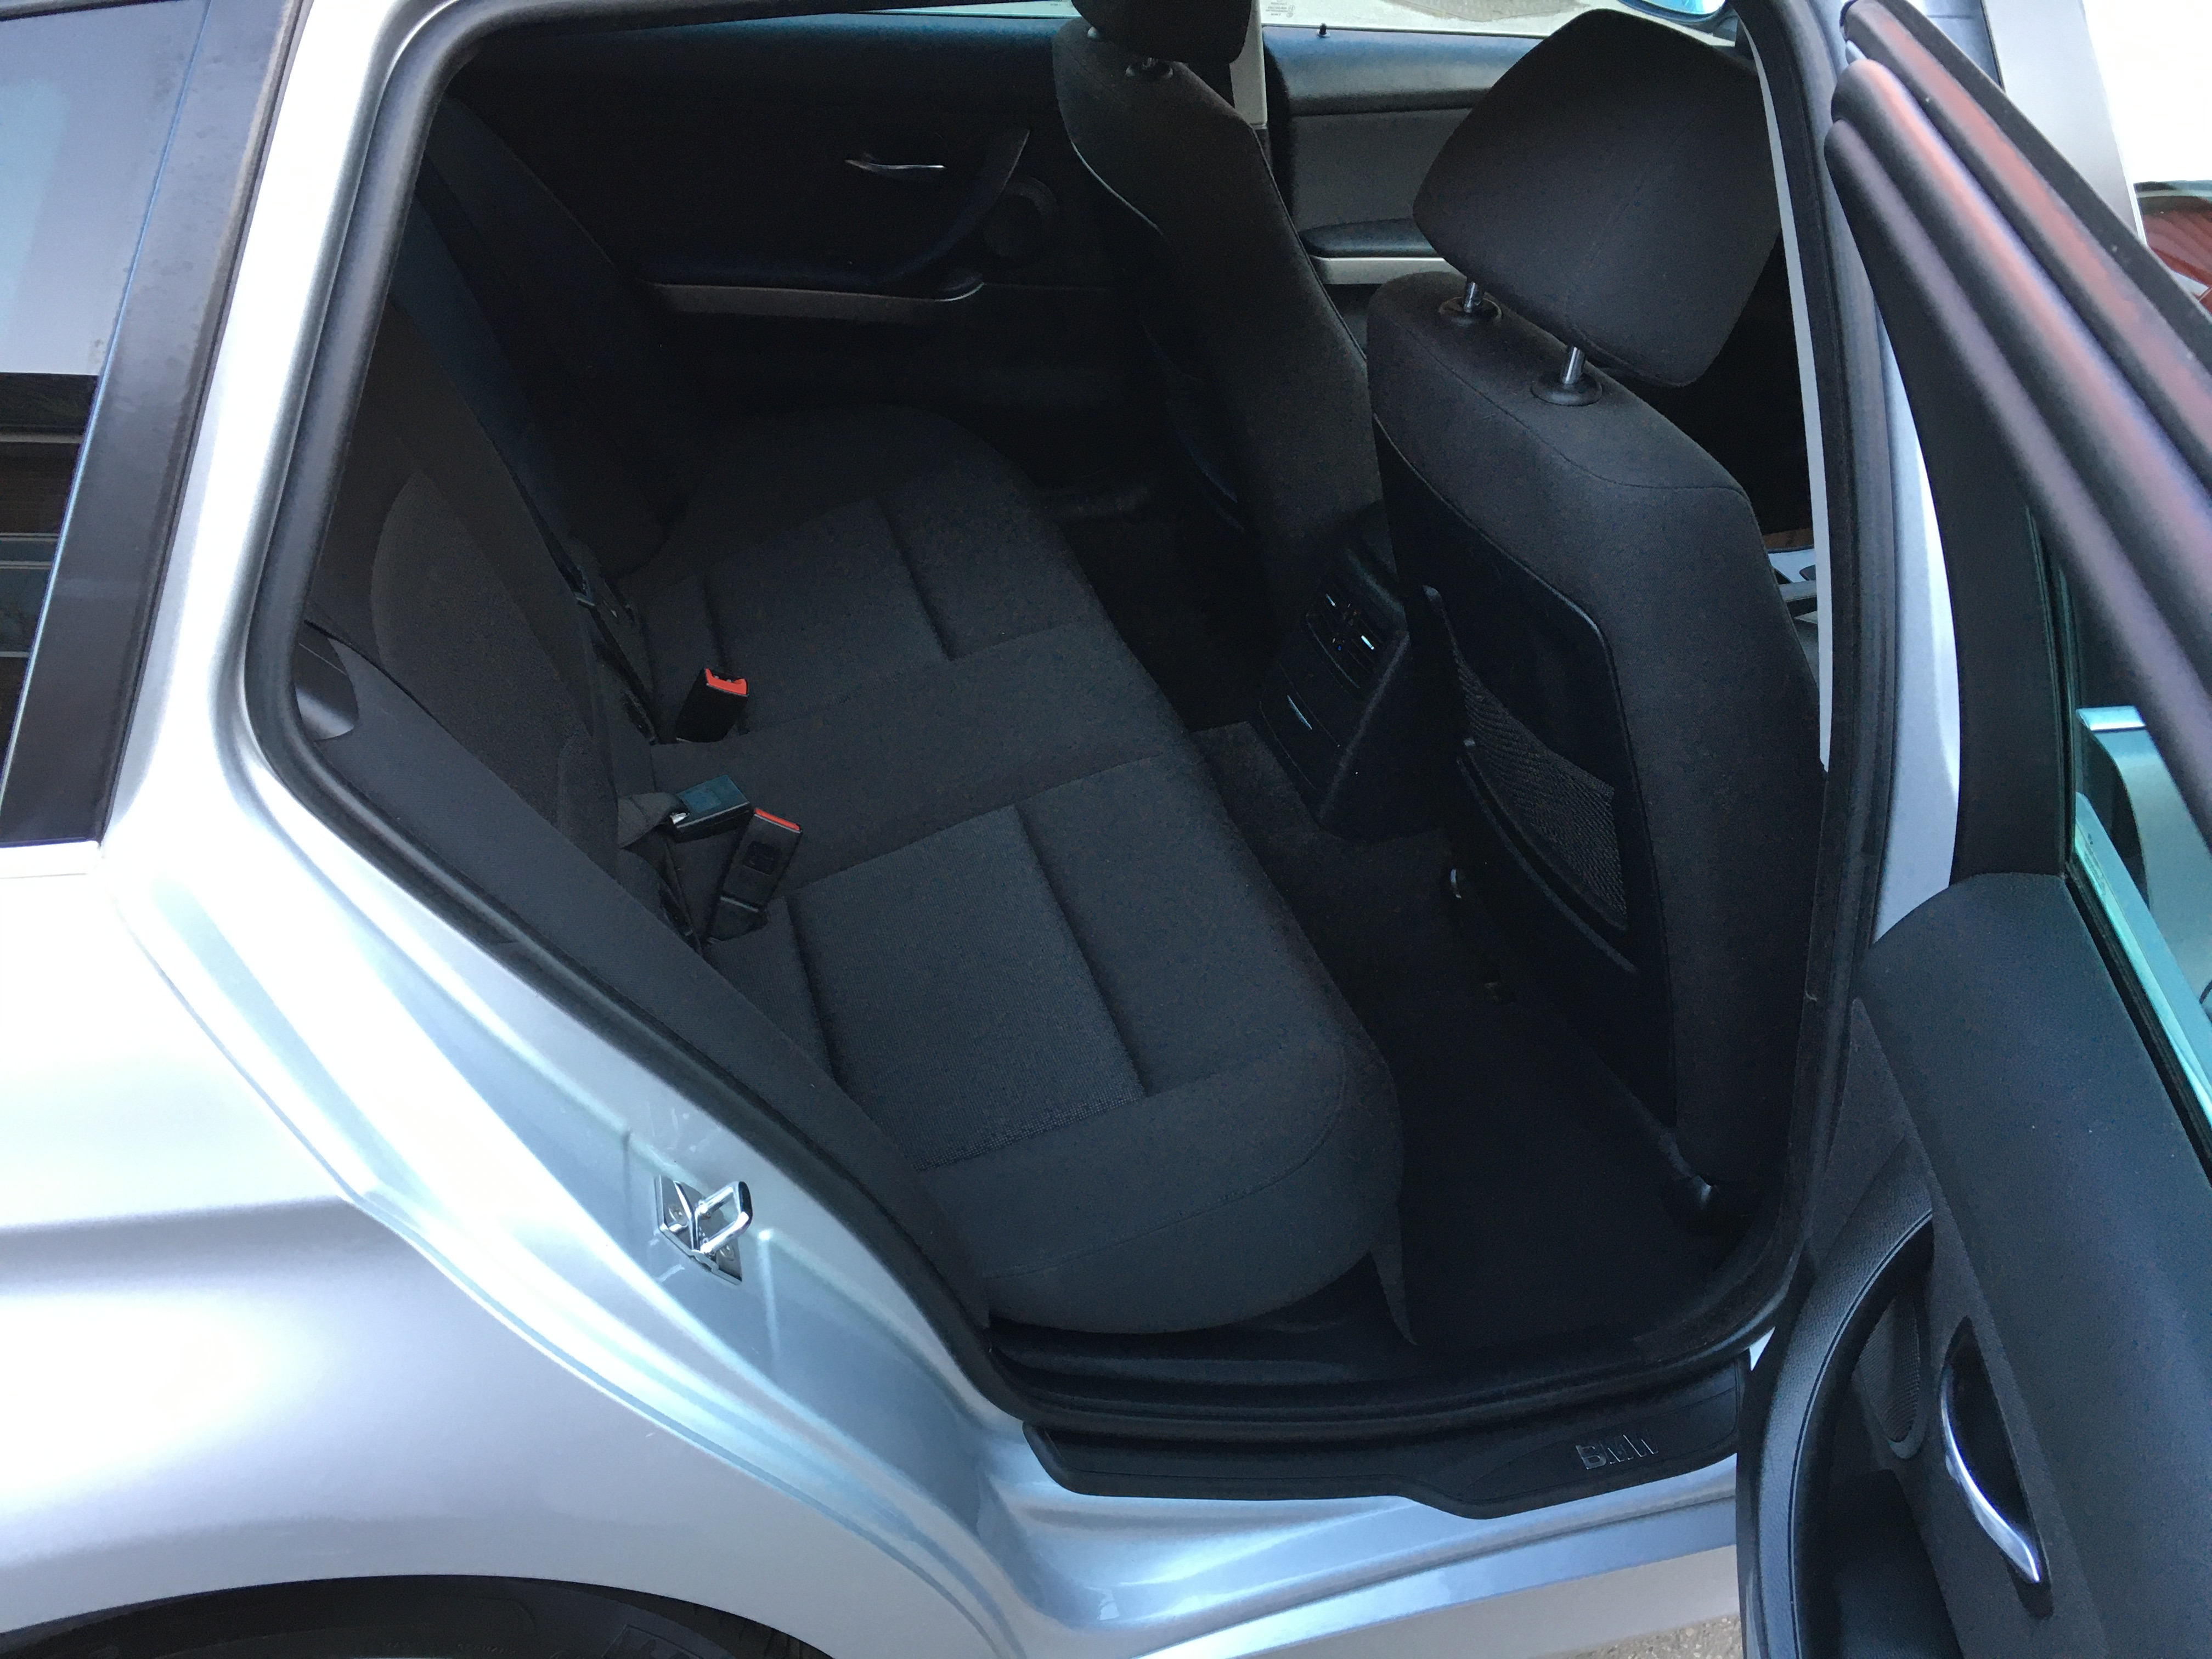 additional car image